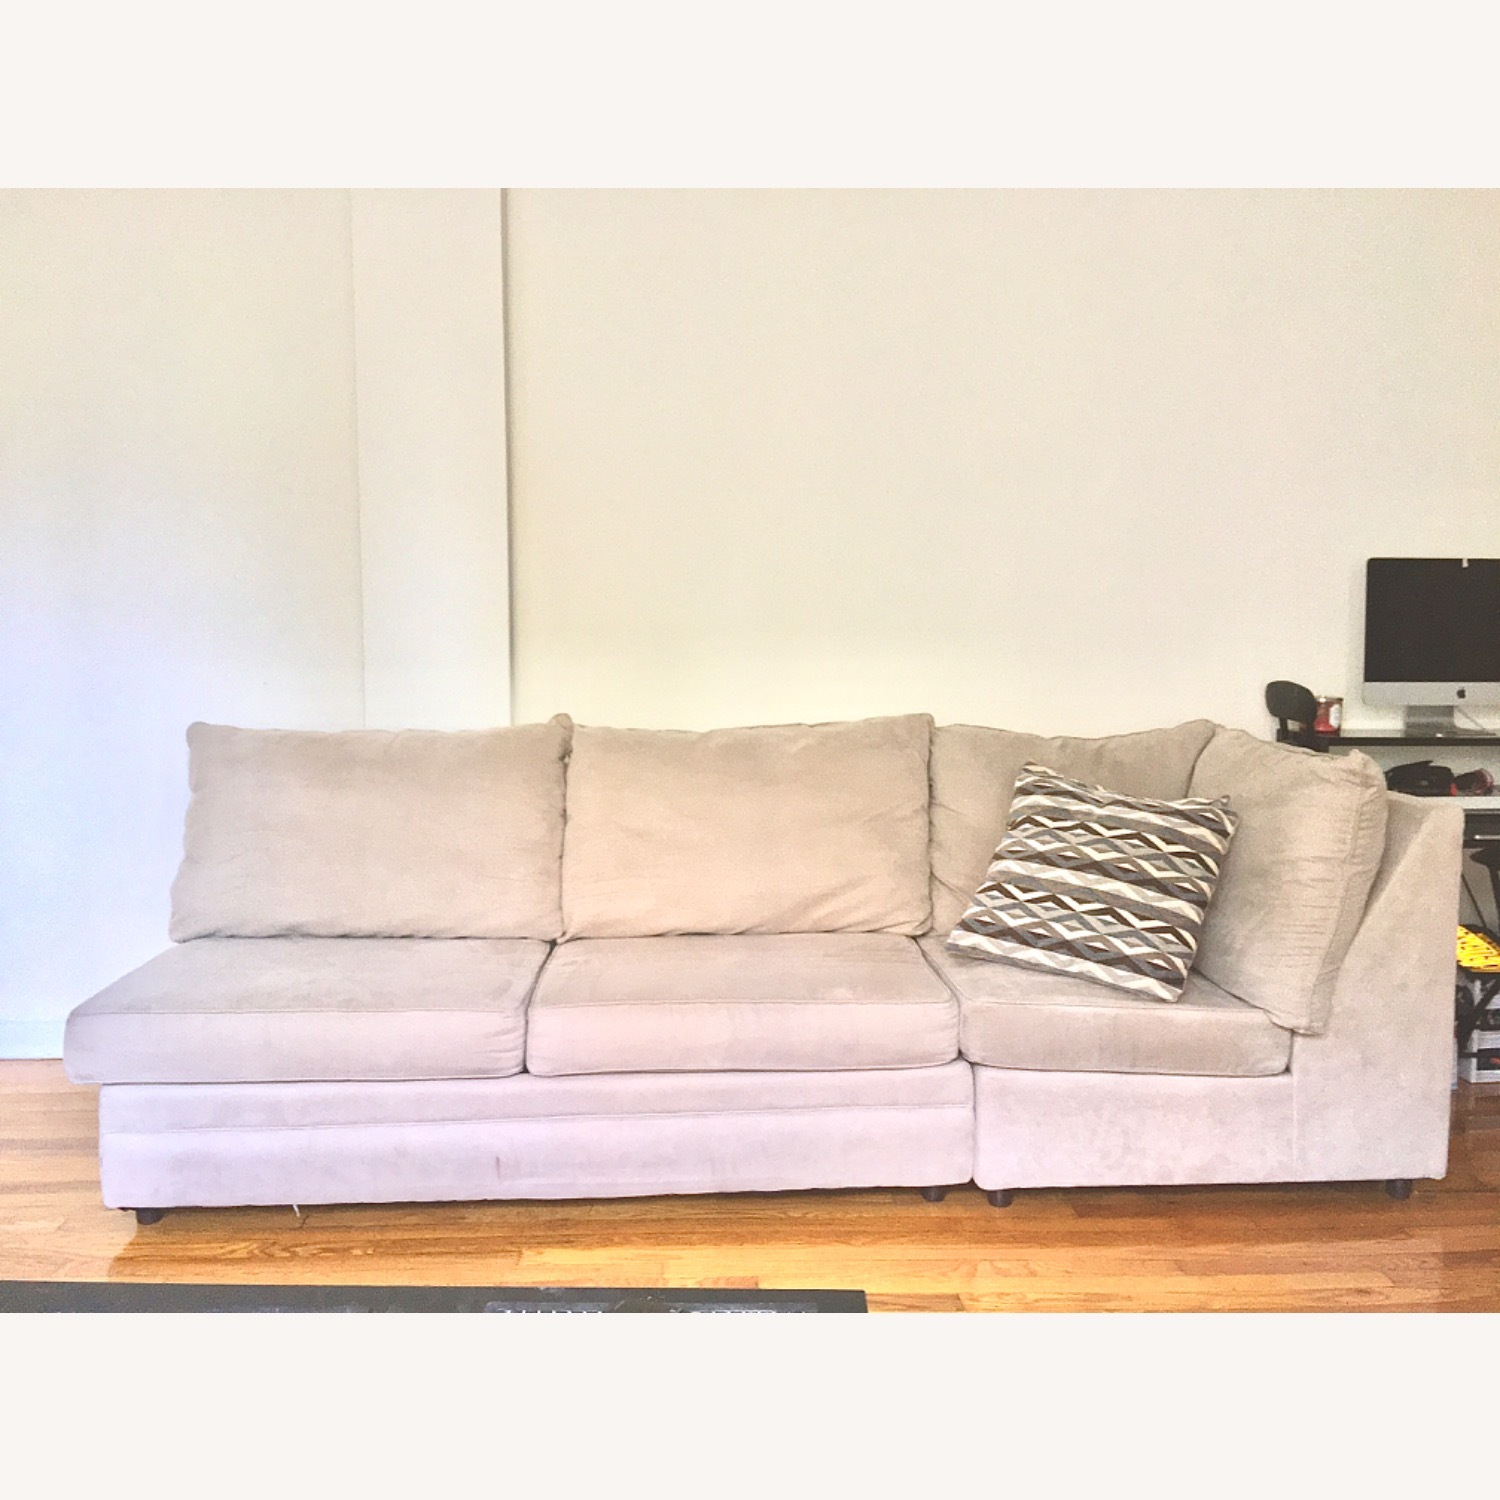 Bob's Discount Grey Two Piece Sofa - image-1